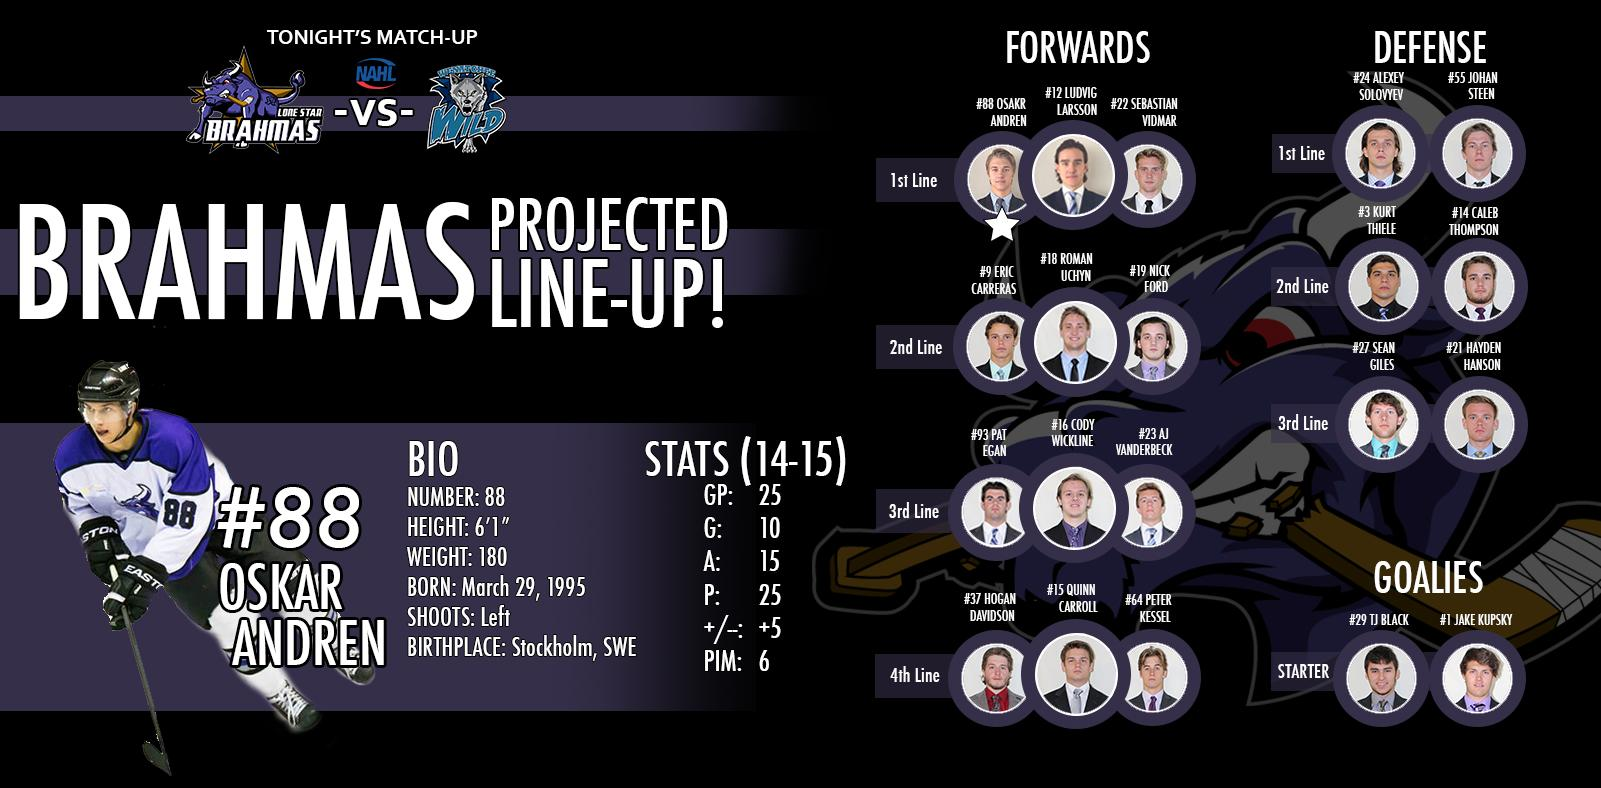 RT @LoneStarBrahmas: Tonight's projected line-up against the @WenatcheeWild1 #Bullieve http://t.co/nJ8P488tue